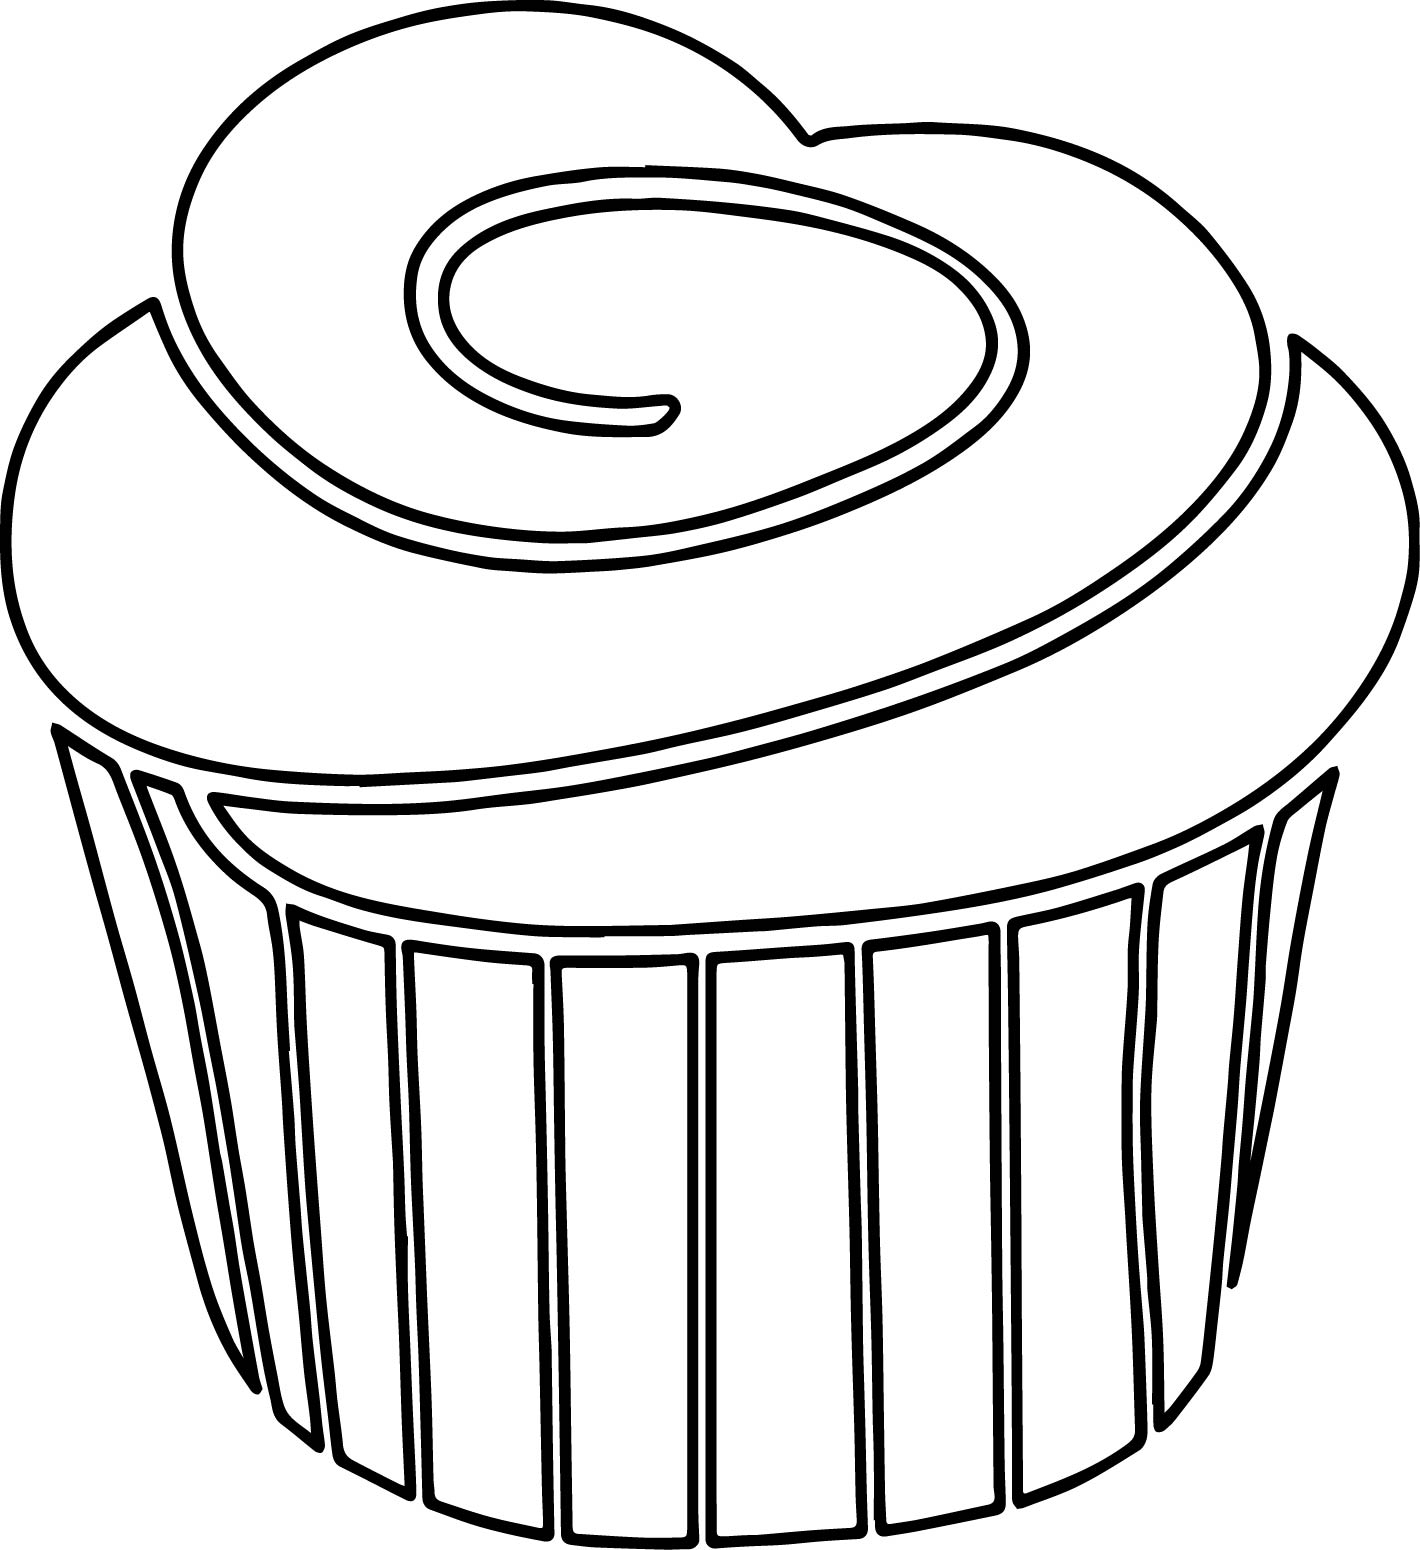 Frosting clipart black and white Coloring Strawberry Frosting White A